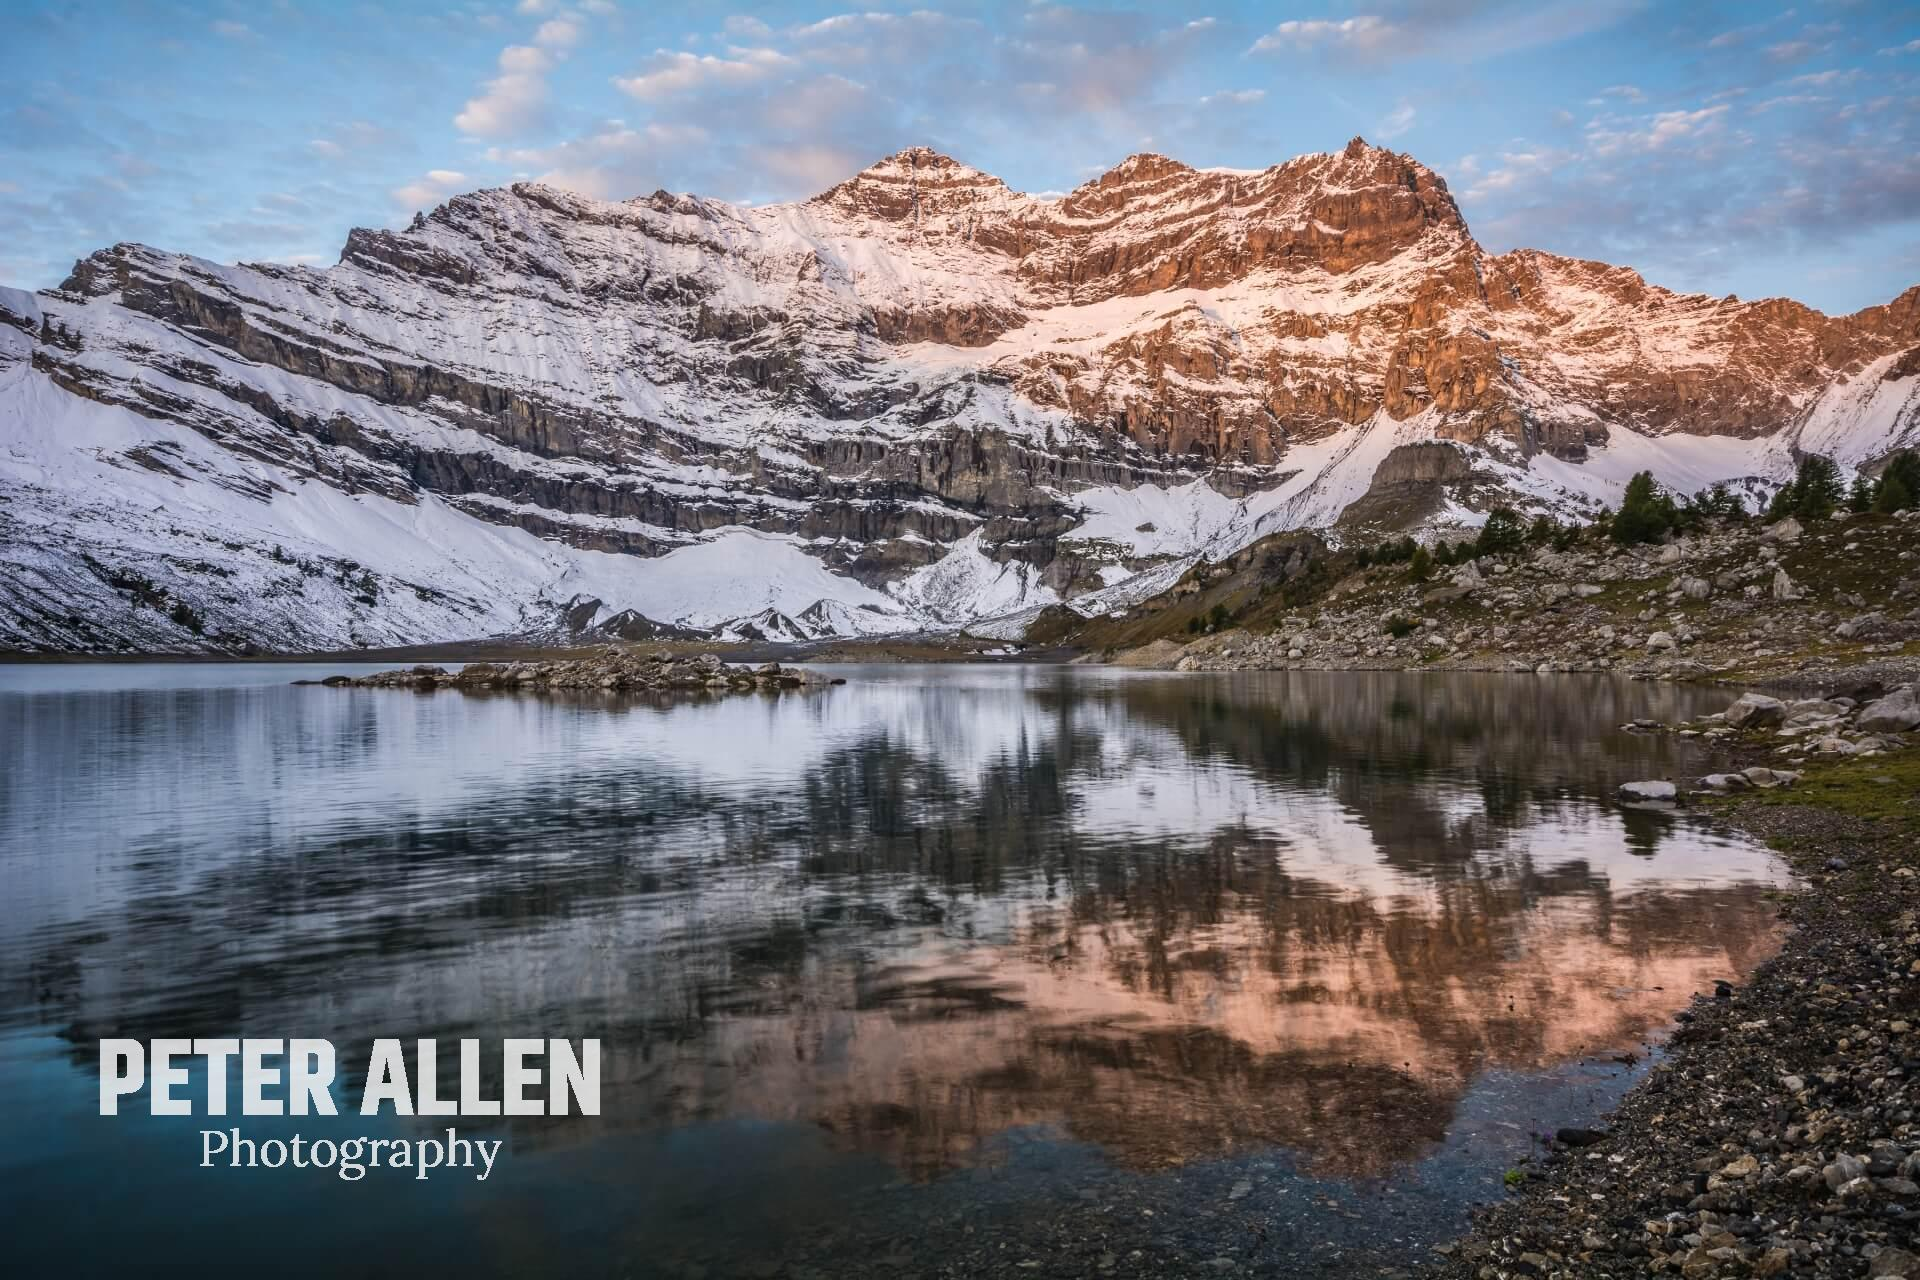 Lac de Salanfe with the first light of the day htting some of the mountains with a mirror-like reflection